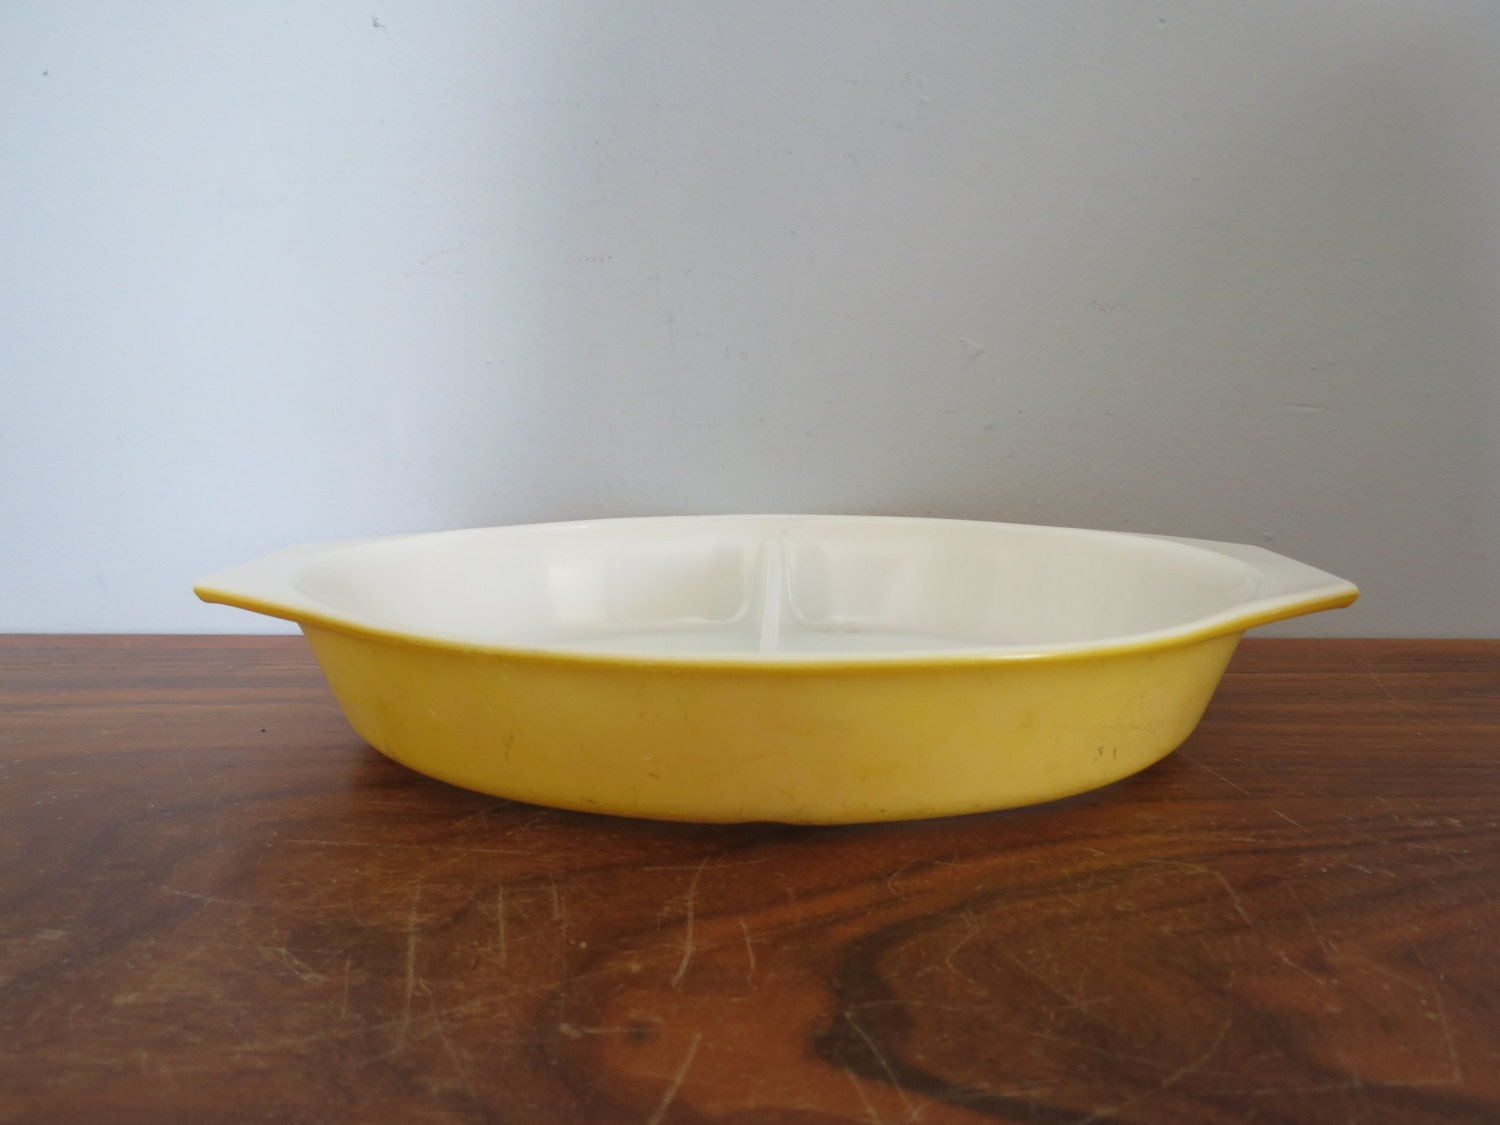 Pyrex Yellow Divided Casserole Vintage Pyrex Baking Dish